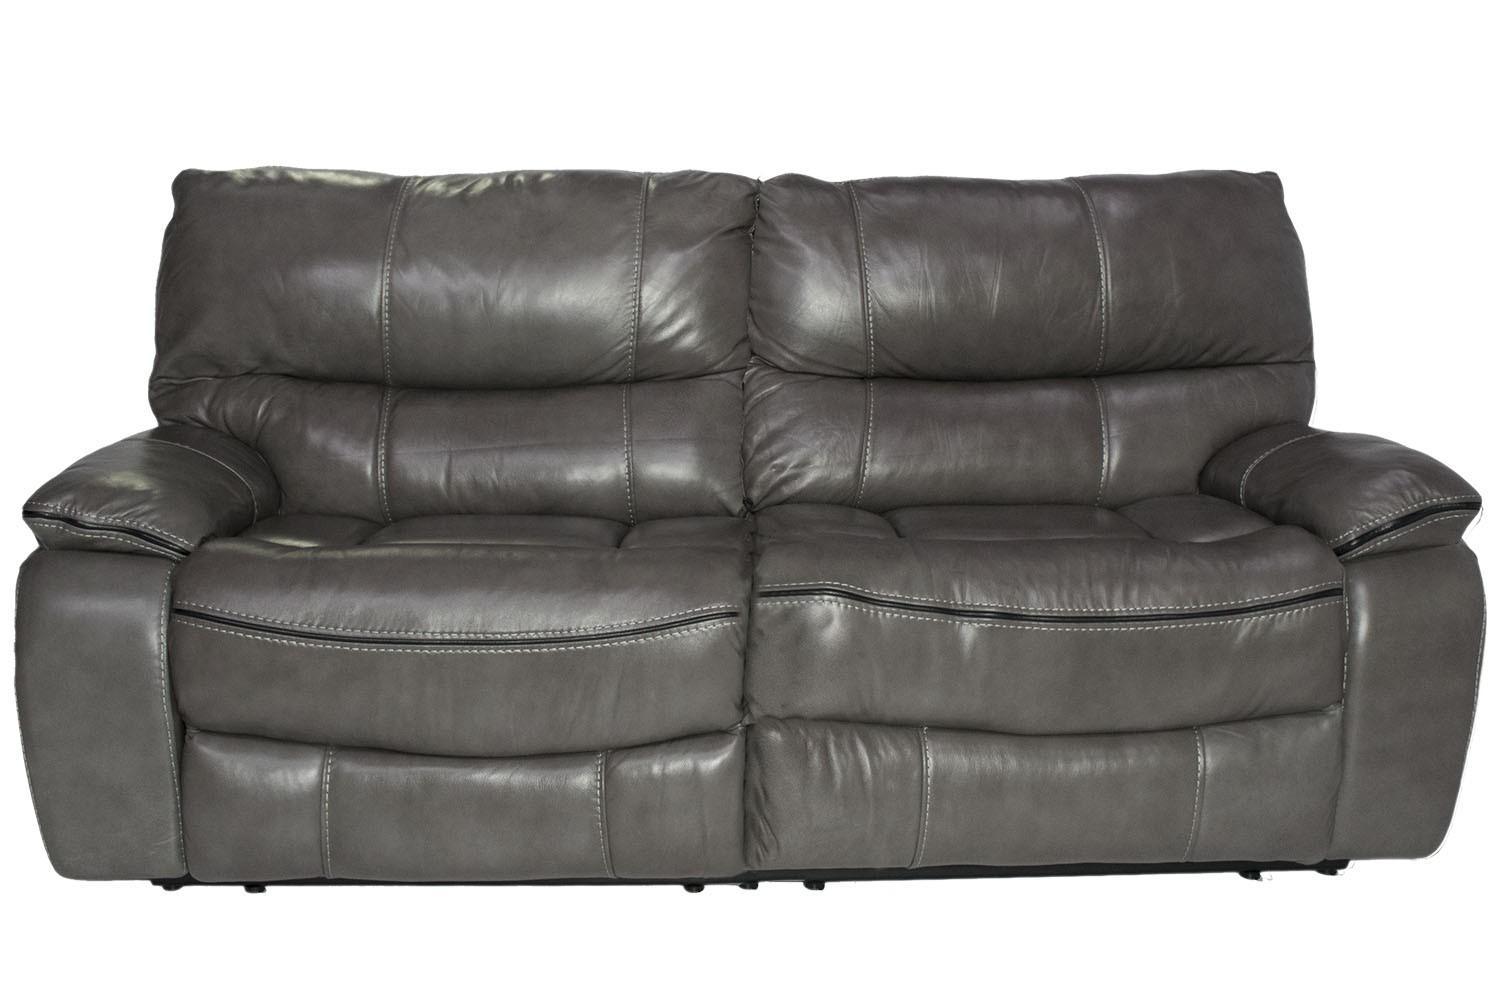 Lotus Leather Gray Reclining Sofa | Mor Furniture For Less With Gray Sofas (Image 13 of 20)